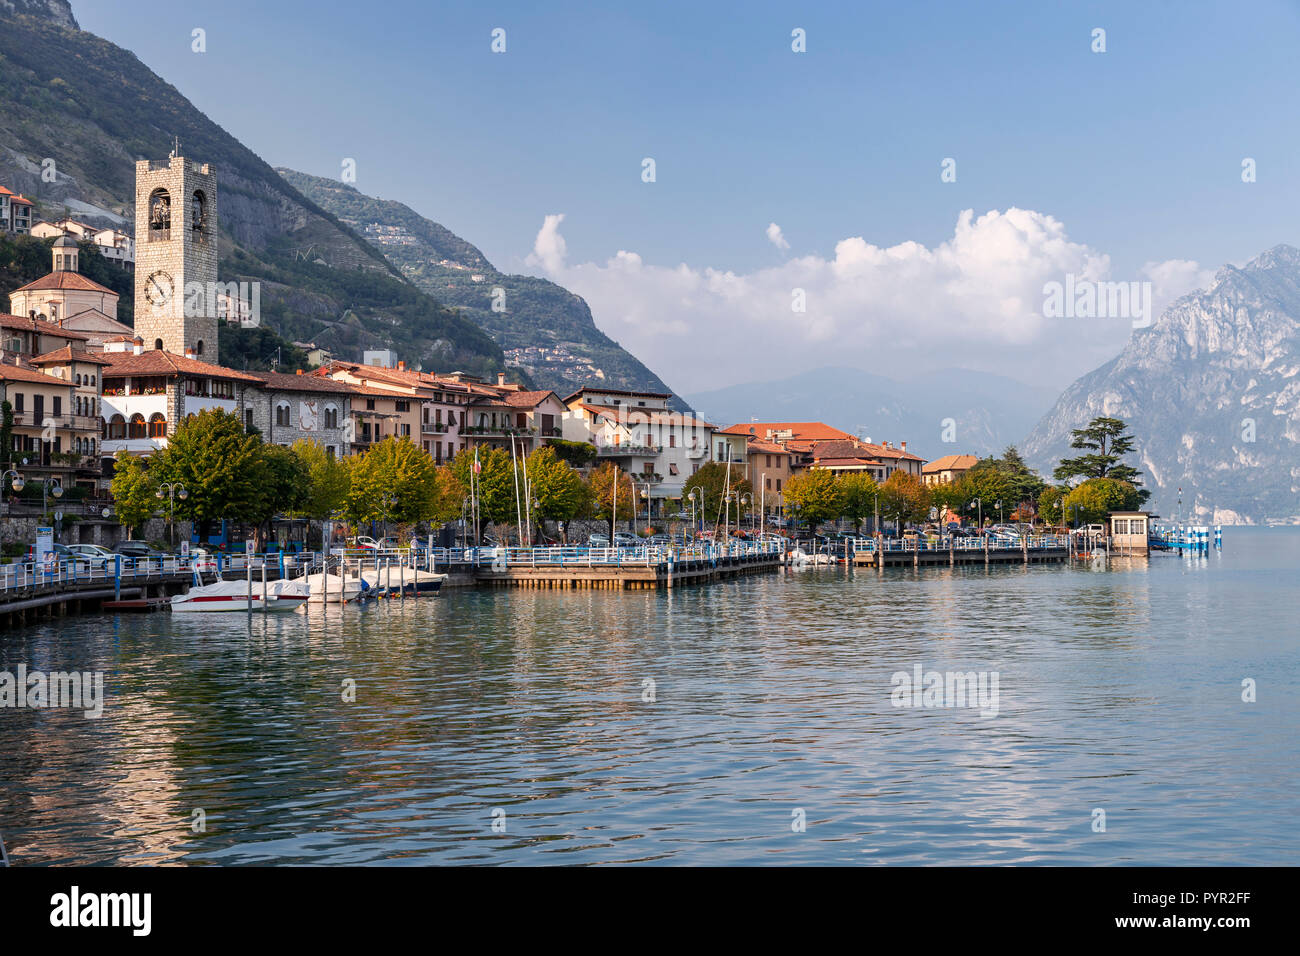 Tavernolo Bergamasca on Lake Iseo in northern Italy - Stock Image